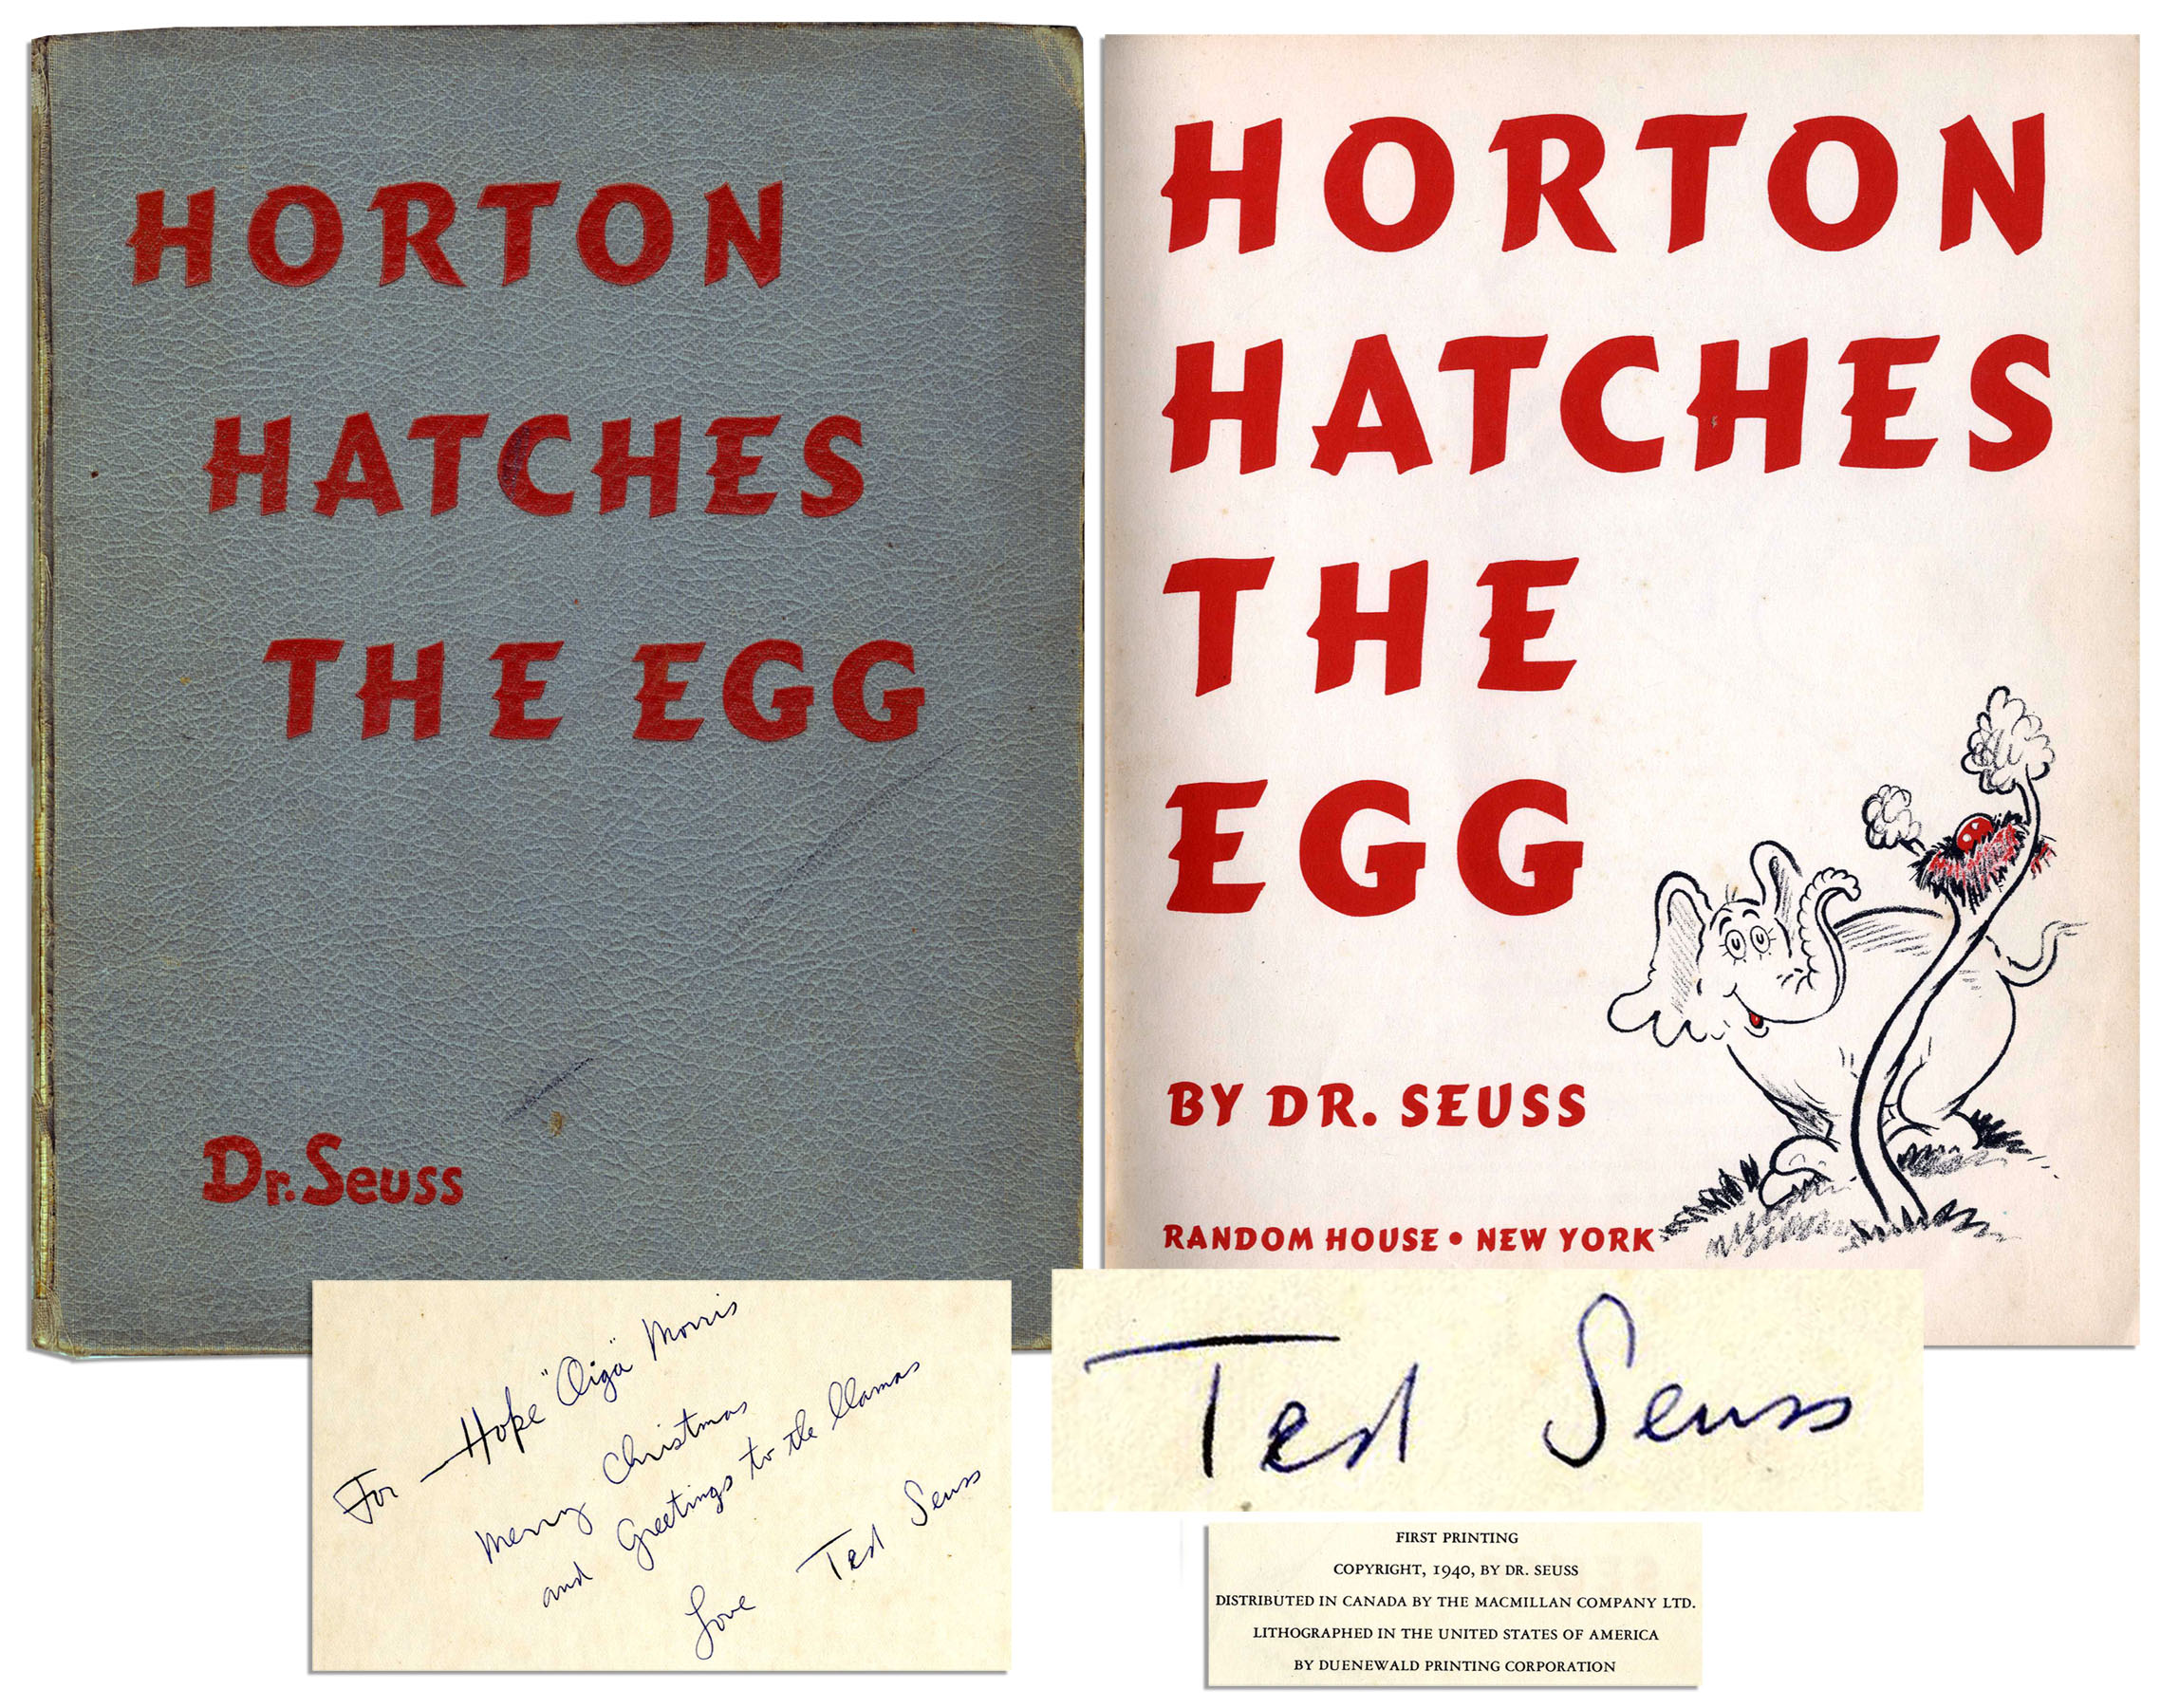 "Dr. Seuss Autograph First Edition, First Printing of ""Horton Hatches The Egg"" Signed by Dr. Seuss -- He Signs ""Ted Seuss"""